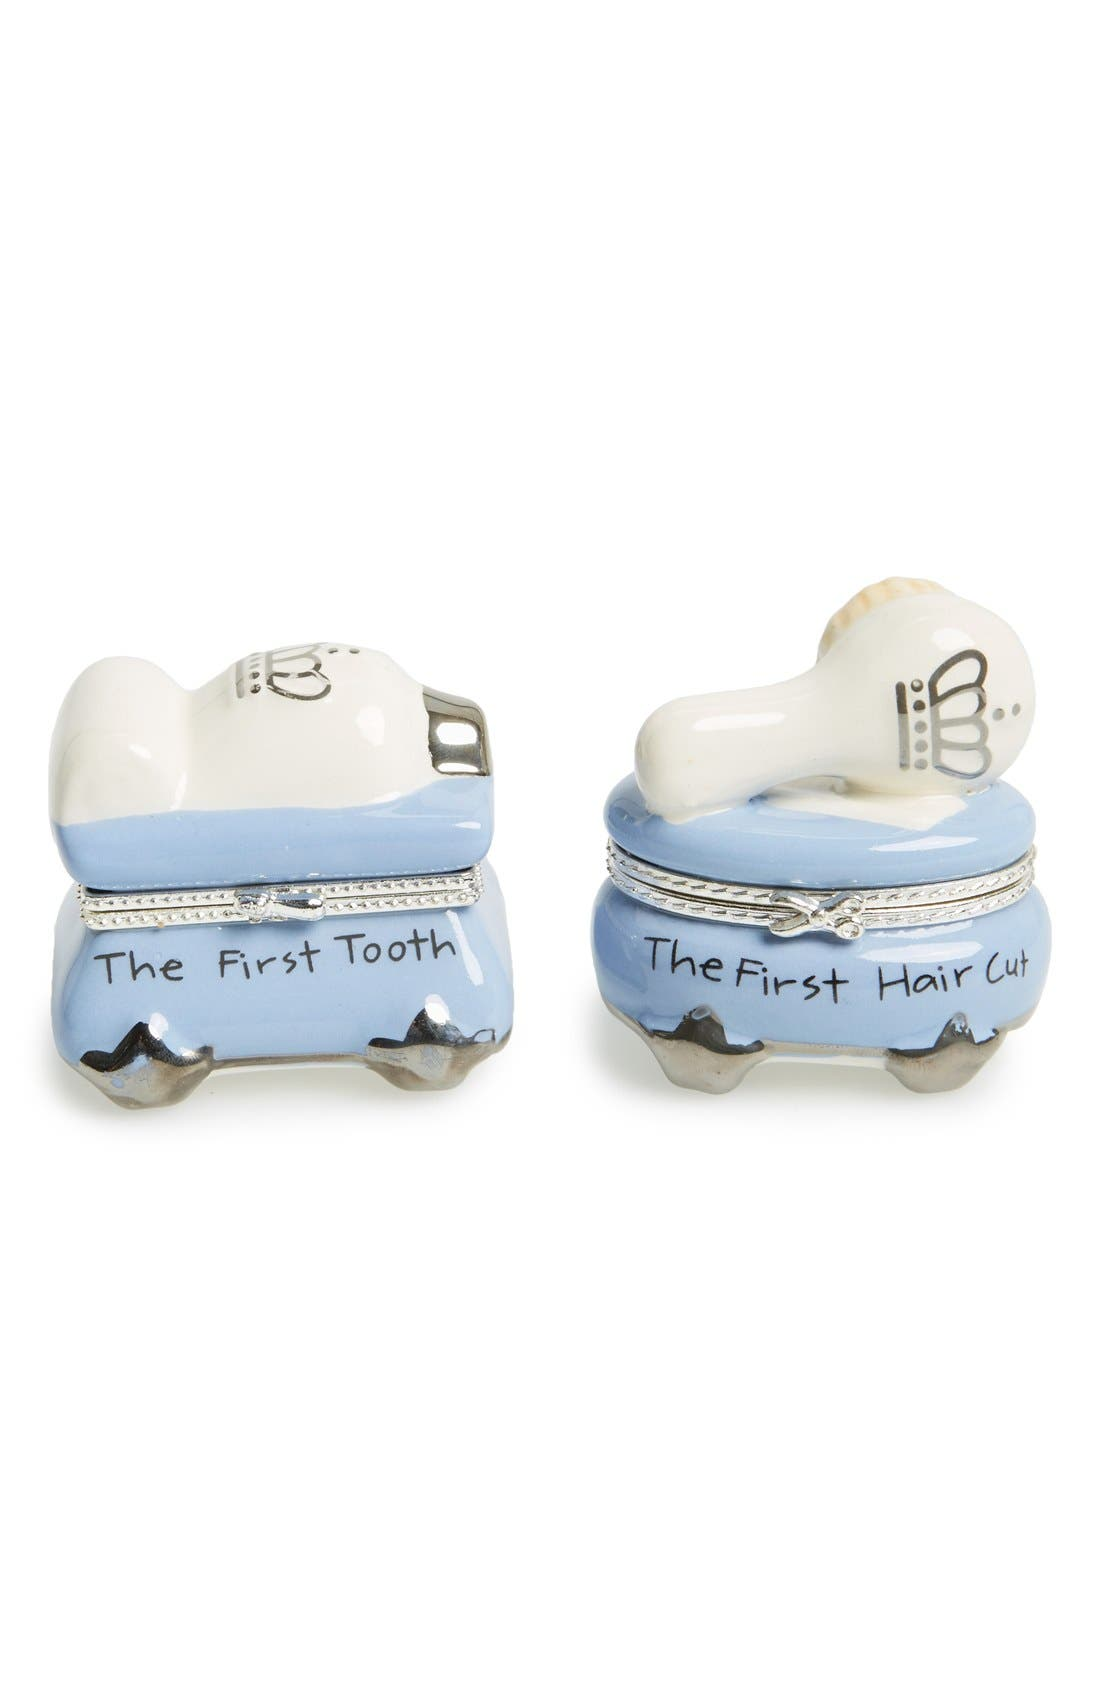 Mud Pie 'Prince' First Tooth & Curl Treasure Box Set